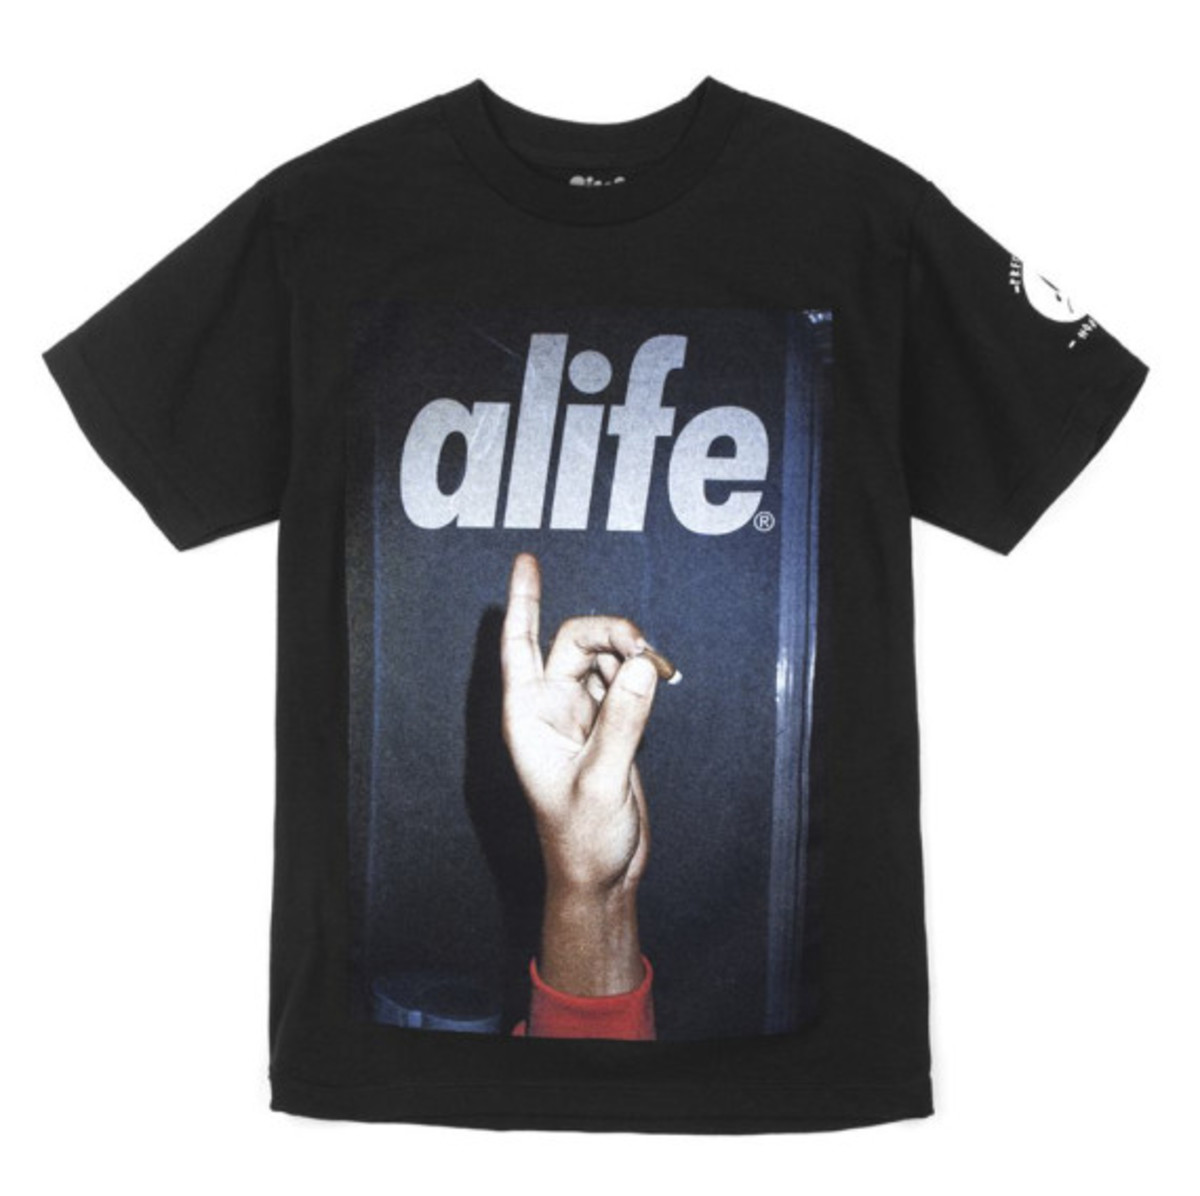 alife-spring-2013-tshirts-collection-available-now-05